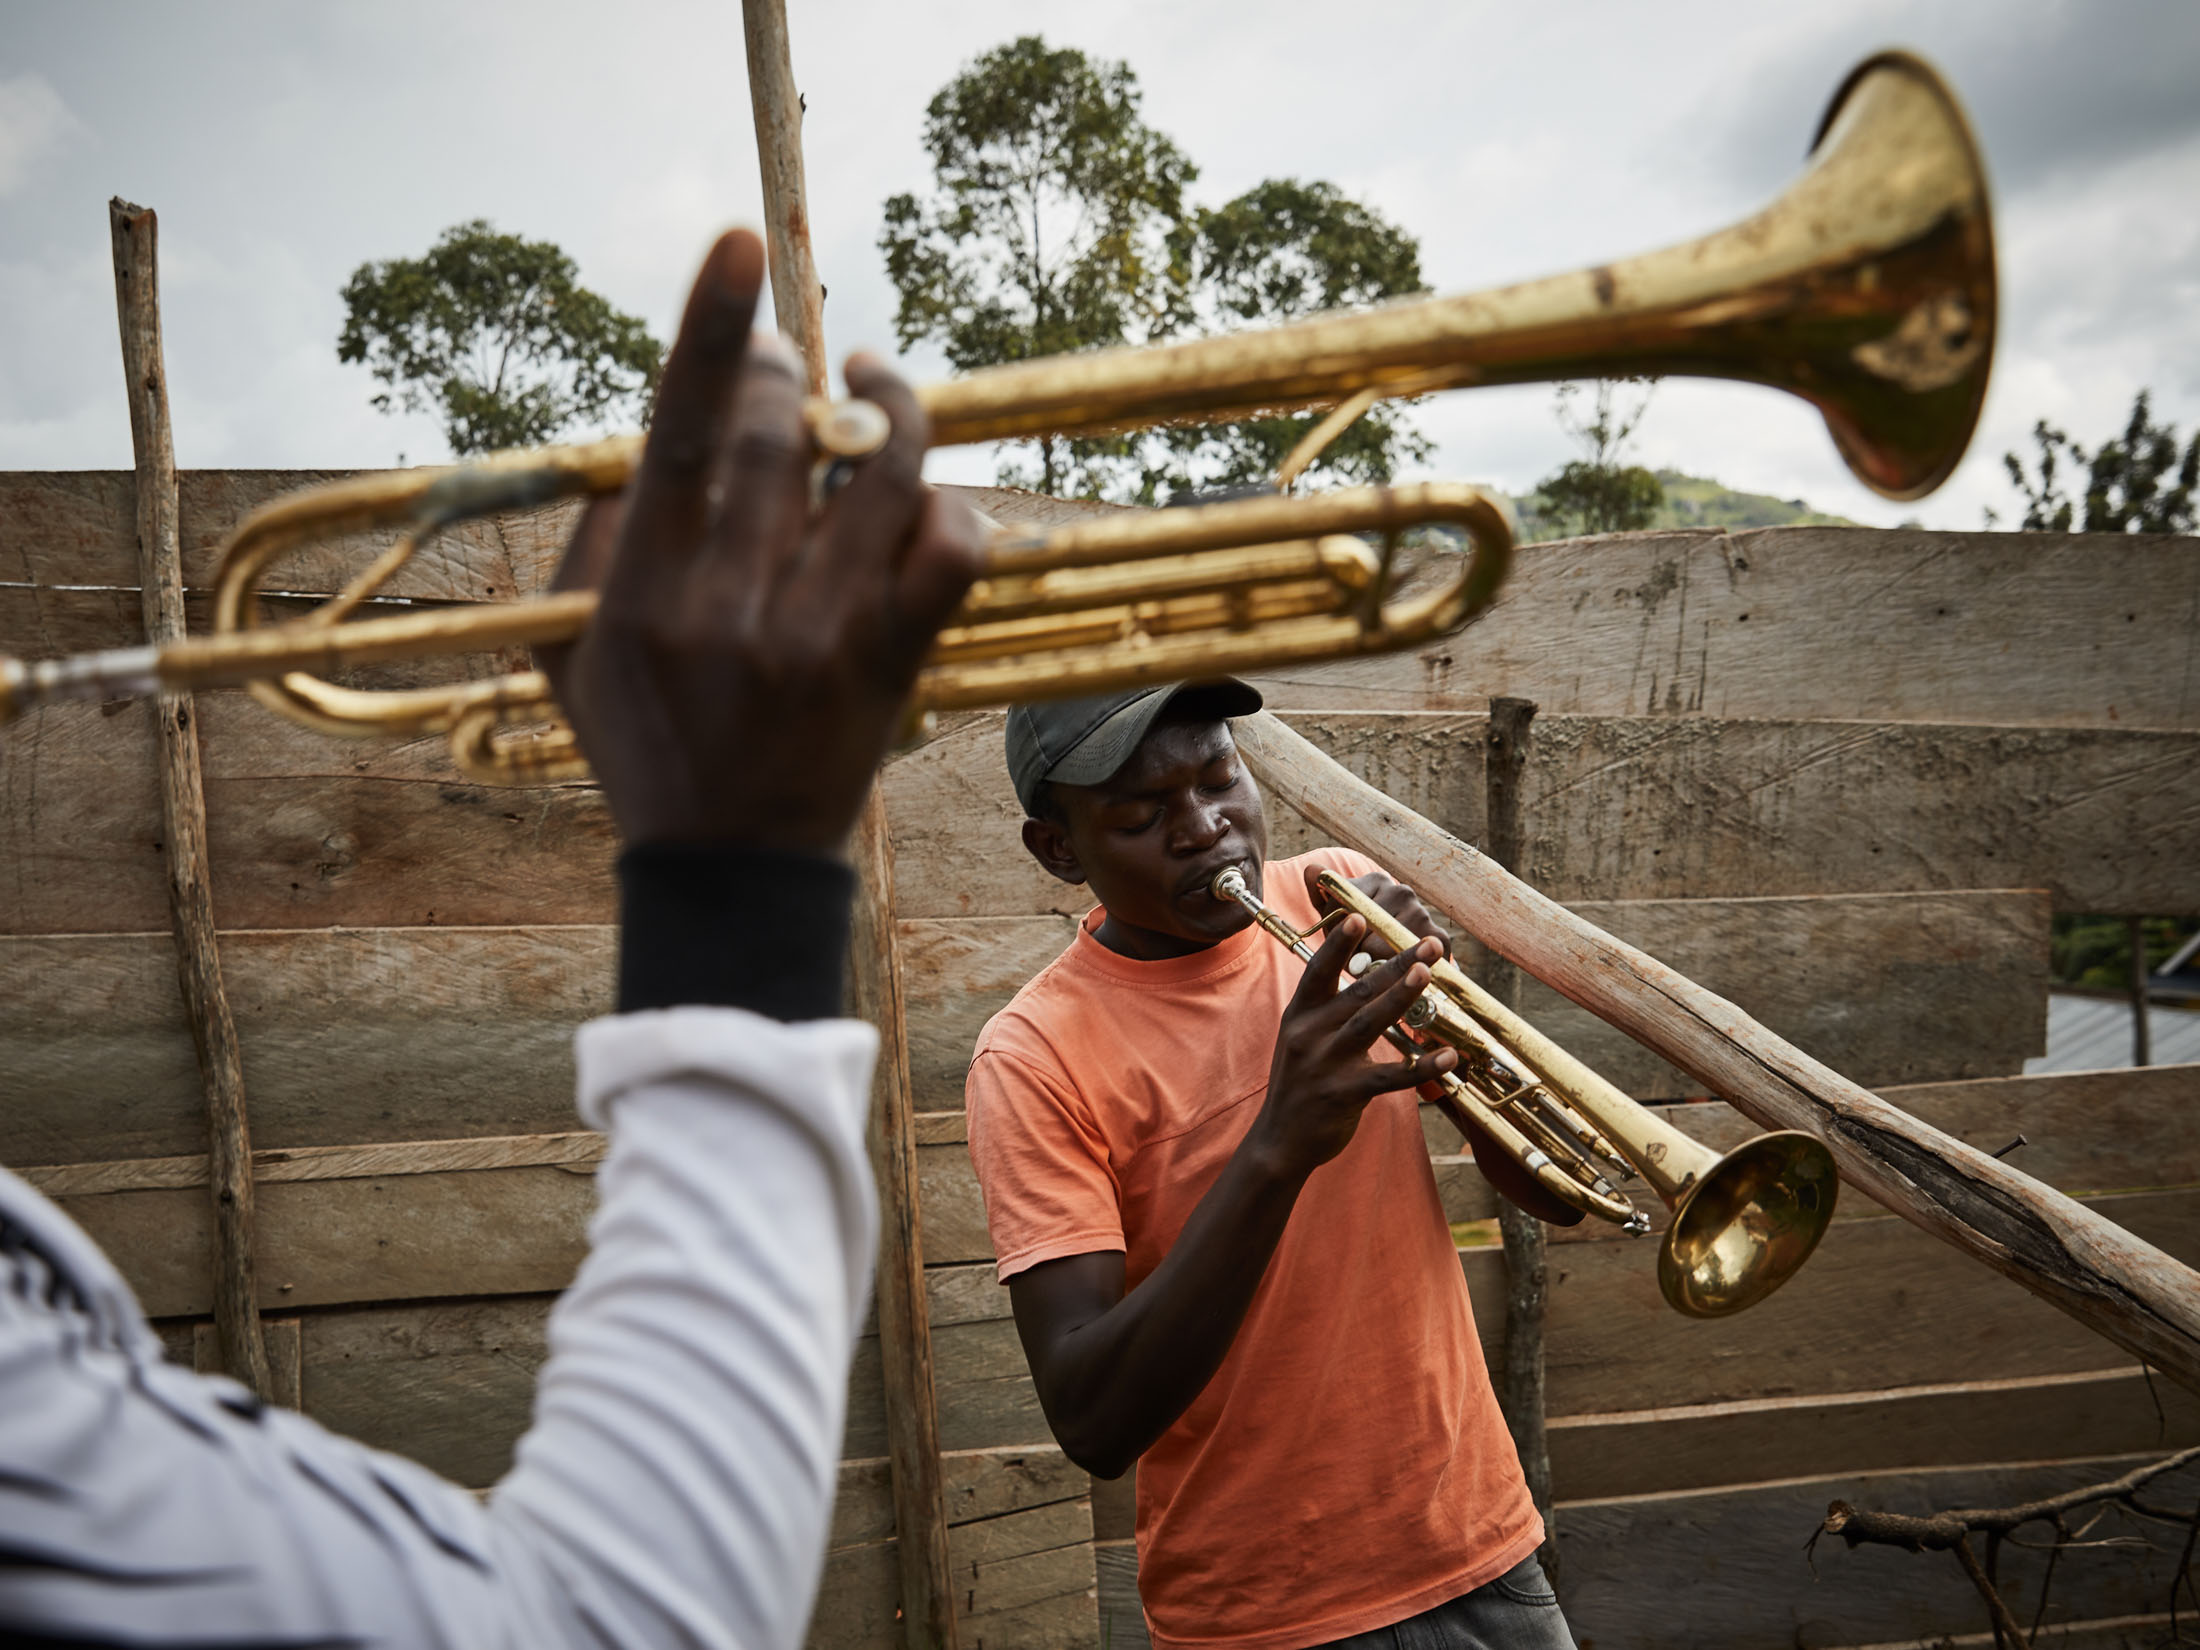 Heri and Moises play their instruments in Beni. the epicentre of the Ebola crisis.